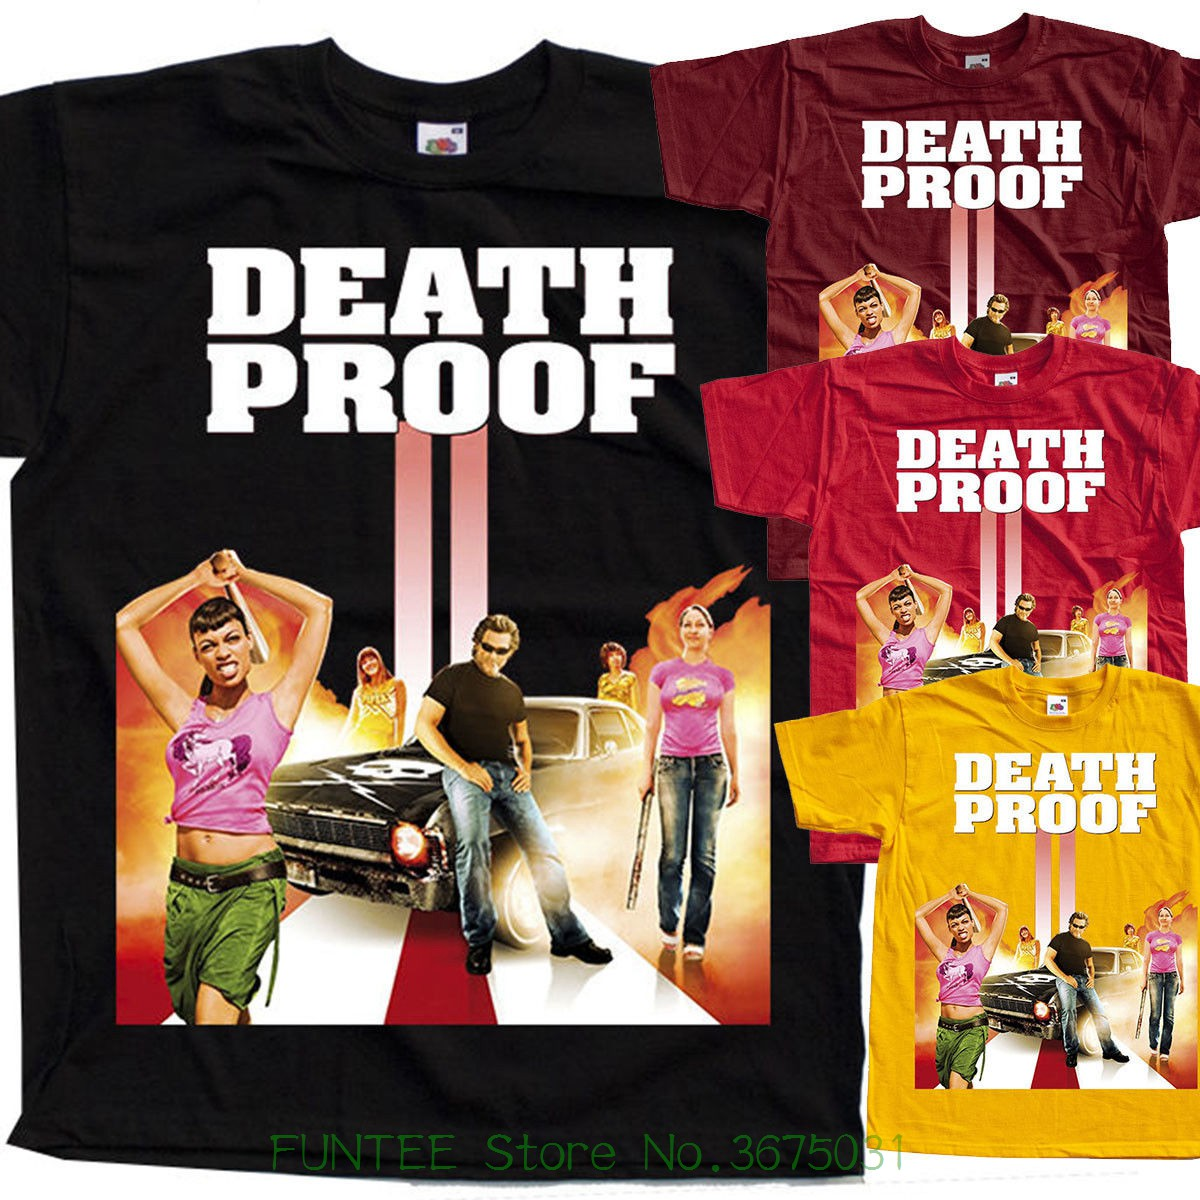 t-shirt-short-sleeve-brand-death-proof-ver-4-quentin-font-b-tarantino-b-font-poster-t-shirt-all-sizes-s-to-5xl